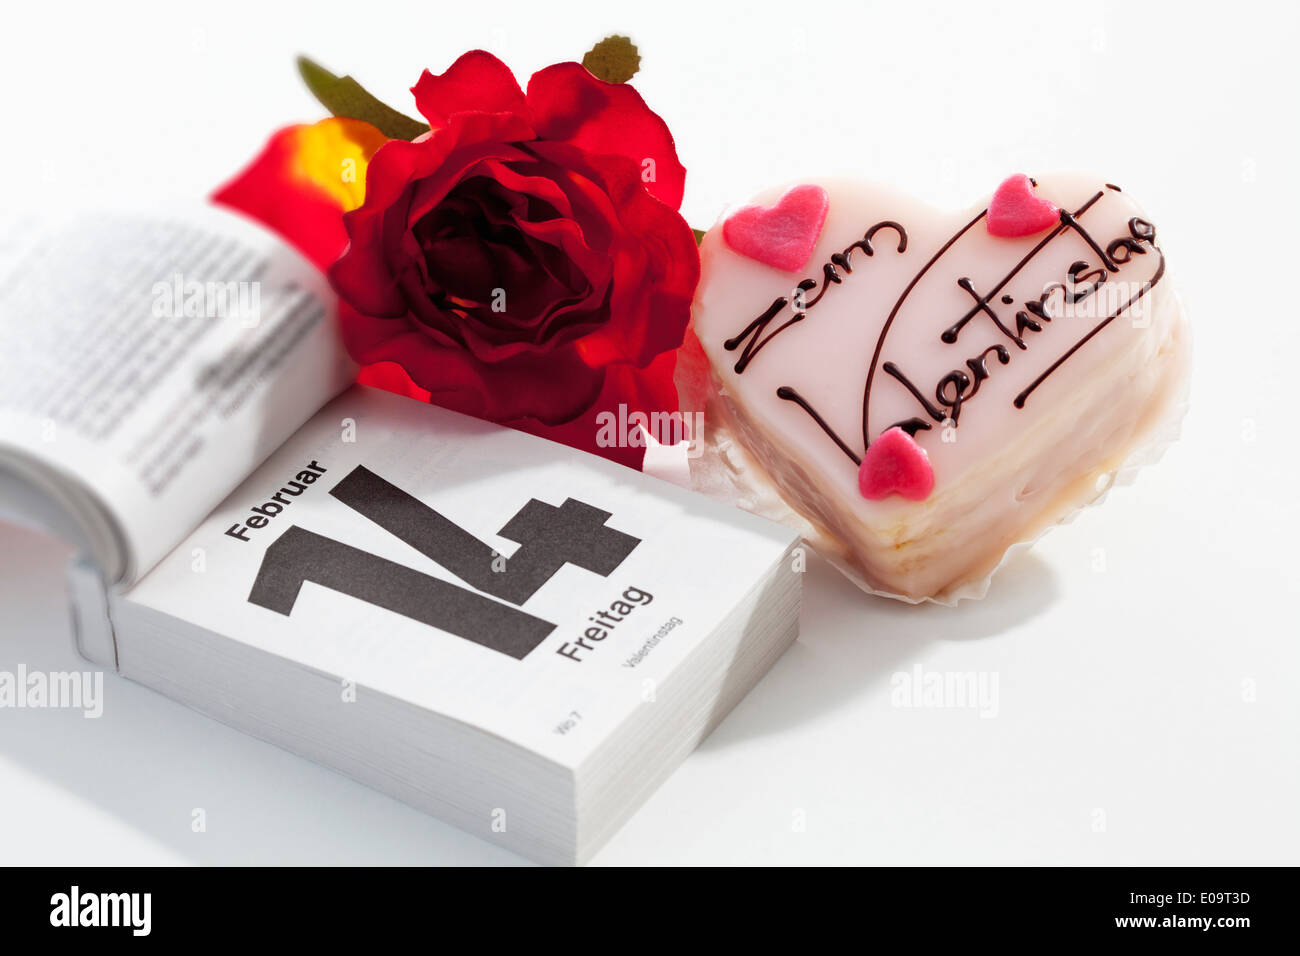 Red rose, petit four and tear-off calendar showing date of Valentine's day on white ground - Stock Image